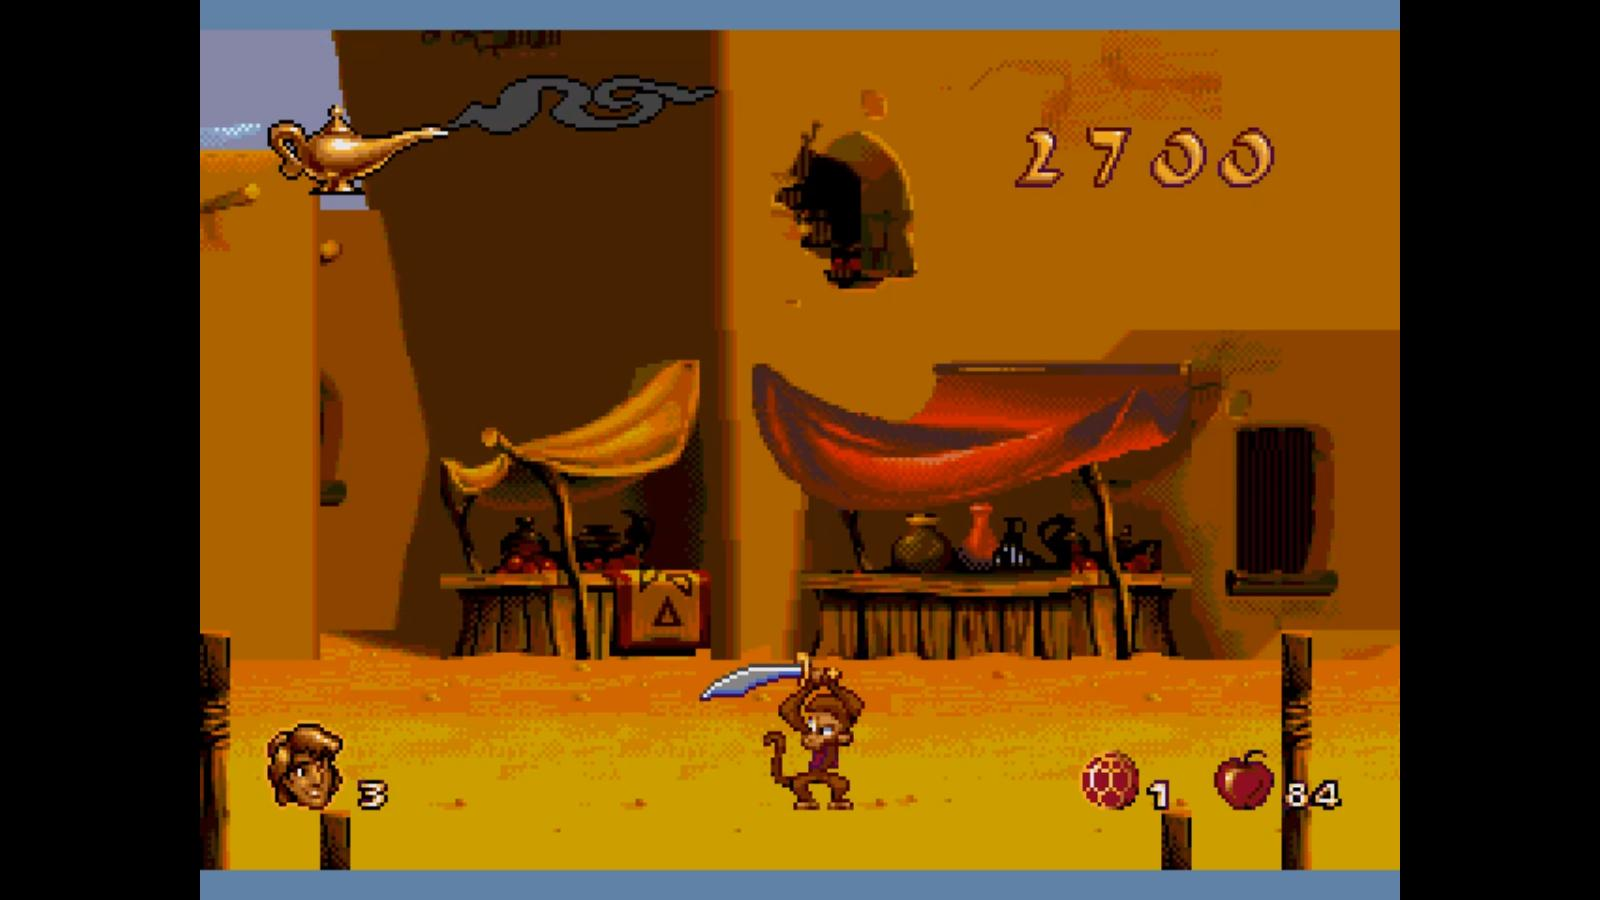 Guide Aladdin for Android - APK Download